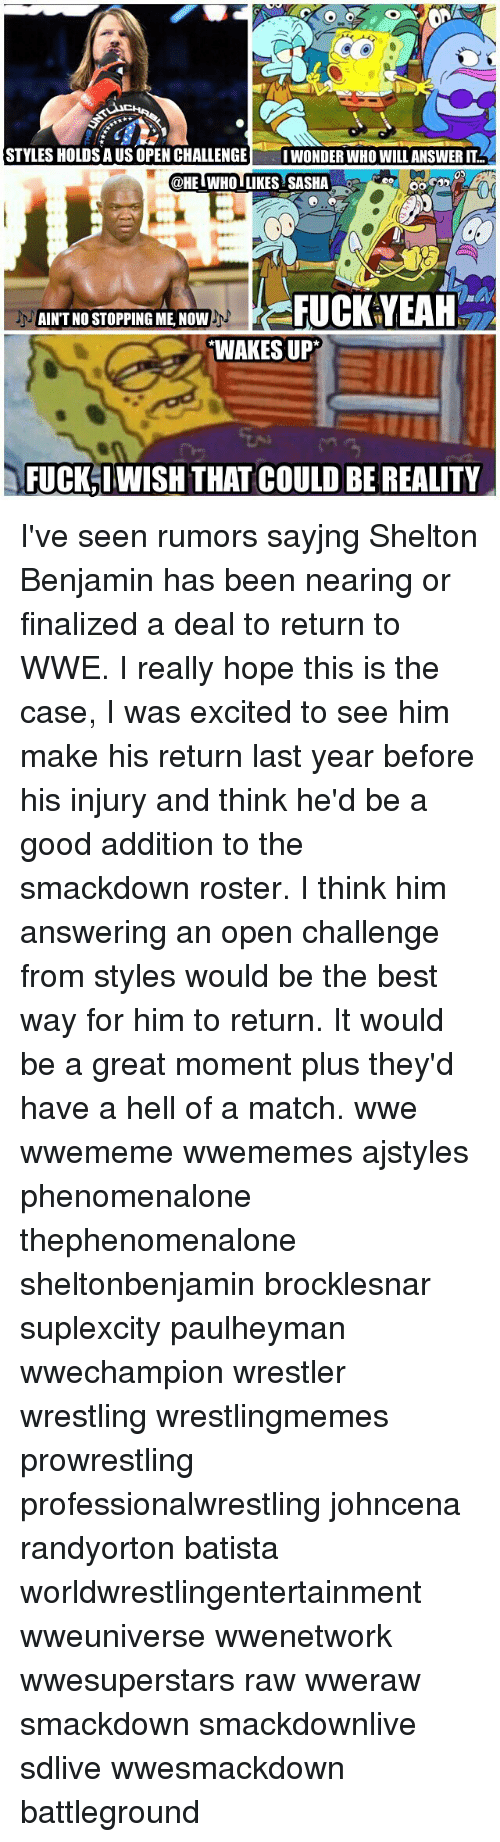 smackdown: STYLES HOLDS A US OPEN CHALLENGEIWONDER WHO WILLANSWER IT  @HEIWHO LIKES SASHA  AIN'T NO STOPPING ME, NOW  WAKES UP  FUCK IWISH THAT COULD BE REALITY I've seen rumors sayjng Shelton Benjamin has been nearing or finalized a deal to return to WWE. I really hope this is the case, I was excited to see him make his return last year before his injury and think he'd be a good addition to the smackdown roster. I think him answering an open challenge from styles would be the best way for him to return. It would be a great moment plus they'd have a hell of a match. wwe wwememe wwememes ajstyles phenomenalone thephenomenalone sheltonbenjamin brocklesnar suplexcity paulheyman wwechampion wrestler wrestling wrestlingmemes prowrestling professionalwrestling johncena randyorton batista worldwrestlingentertainment wweuniverse wwenetwork wwesuperstars raw wweraw smackdown smackdownlive sdlive wwesmackdown battleground